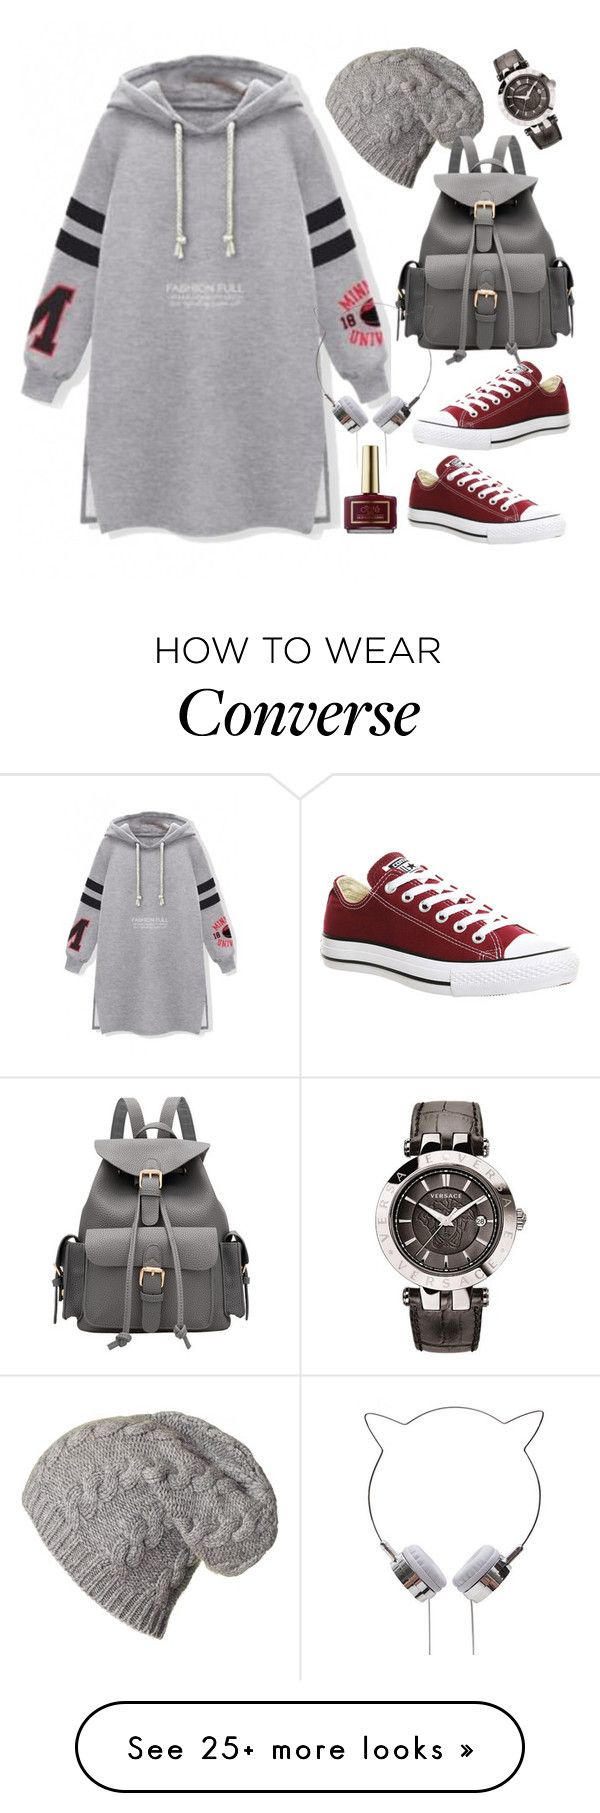 """""""Split hem hoodie"""" by thestyleartisan on Polyvore featuring Converse, Ciaté, Versace, women's clothing, women's fashion, women, female, woman, misses and juniors"""